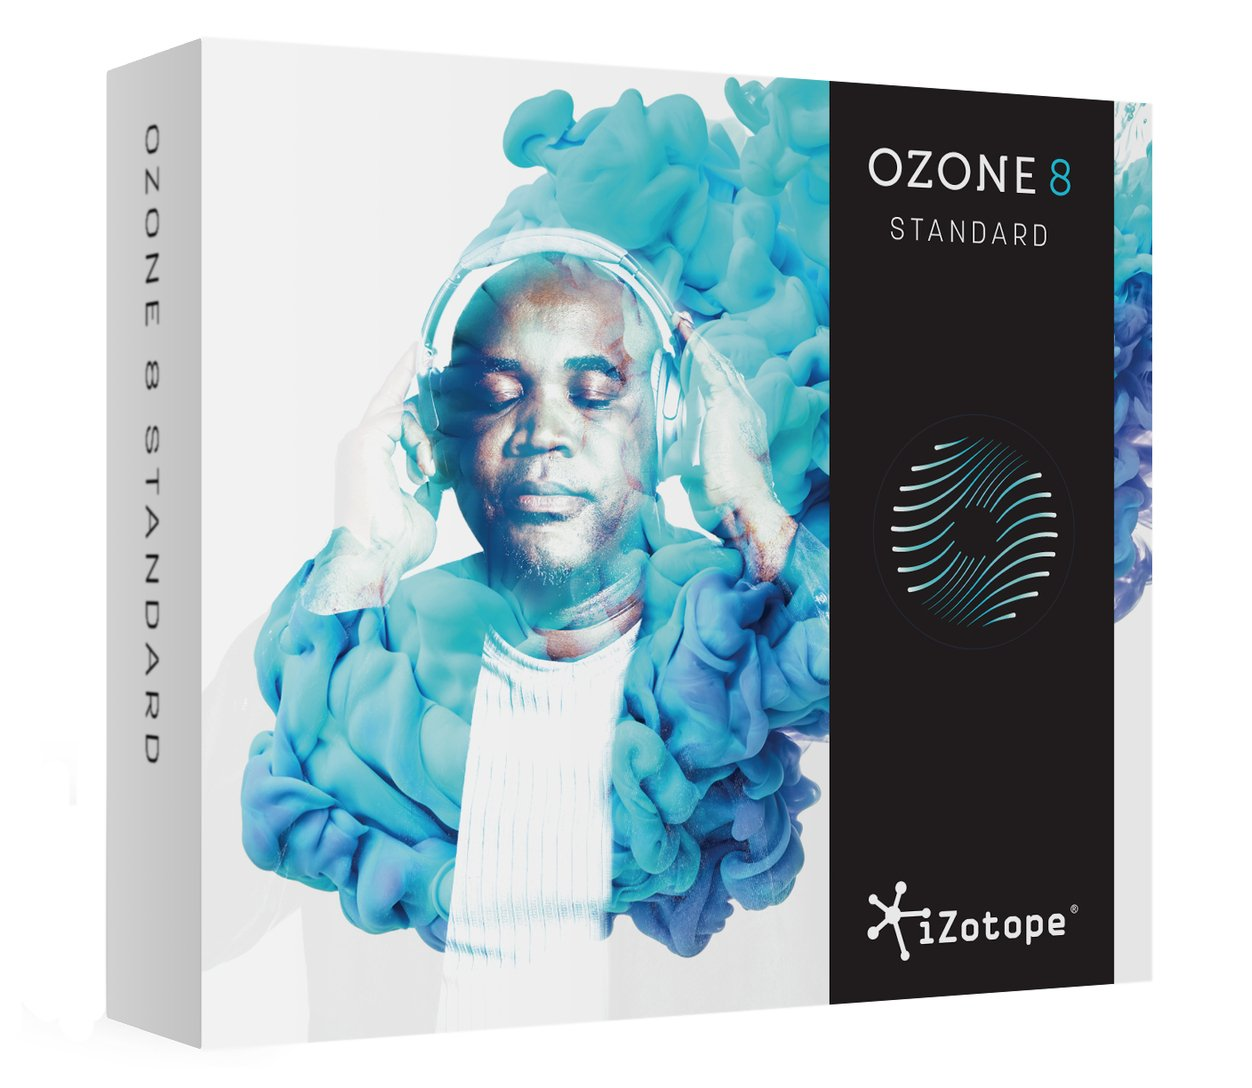 iZotope Ozone 8 Upgrade From Ozone Elements 7 Instant Rebate